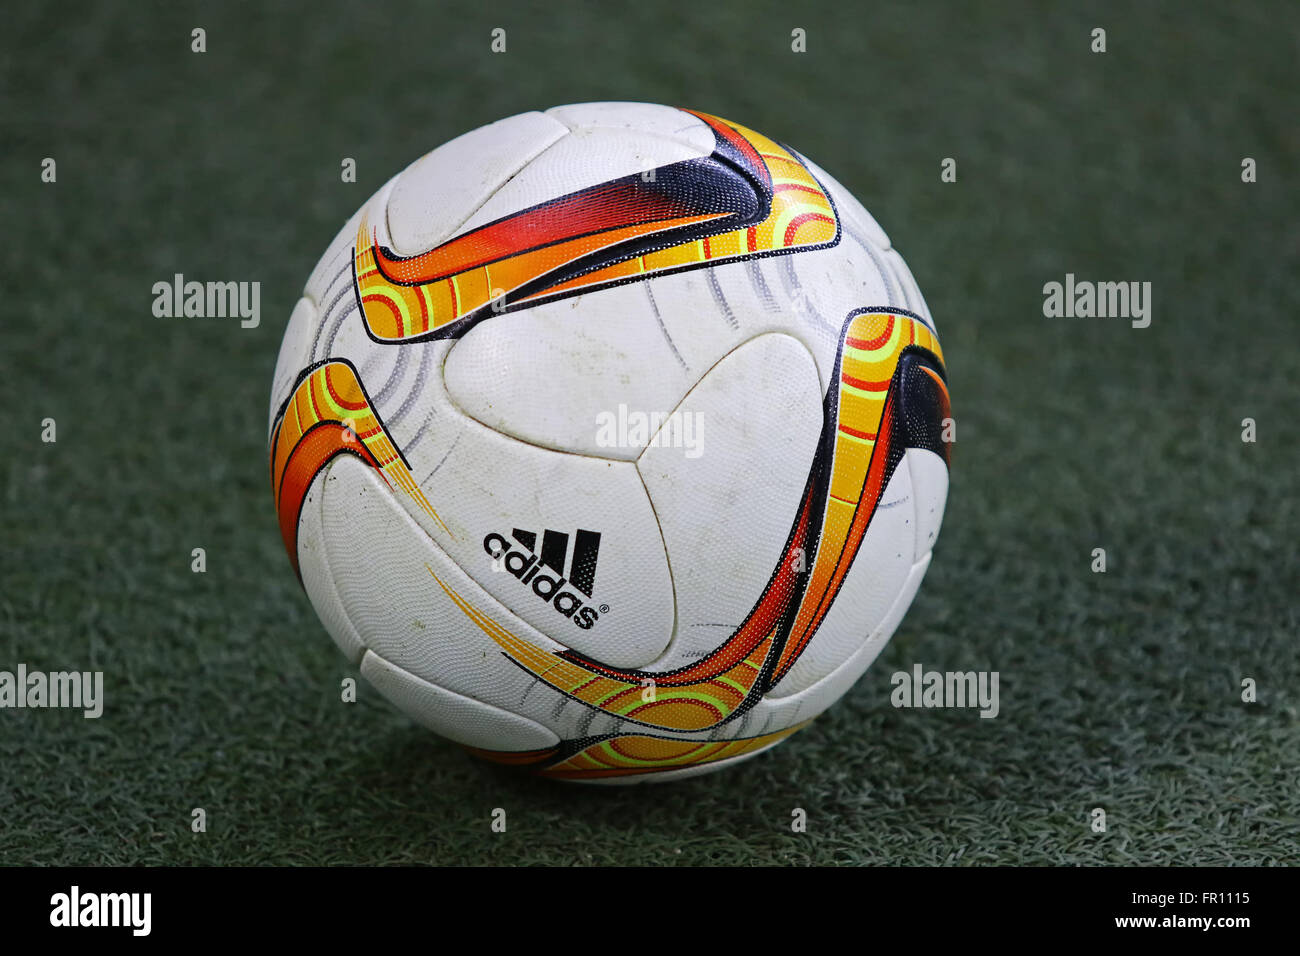 LVIV, UKRAINE - March 10, 2016: Official UEFA Europa League season ball on the grass during UEFA Europa League Round - Stock Image